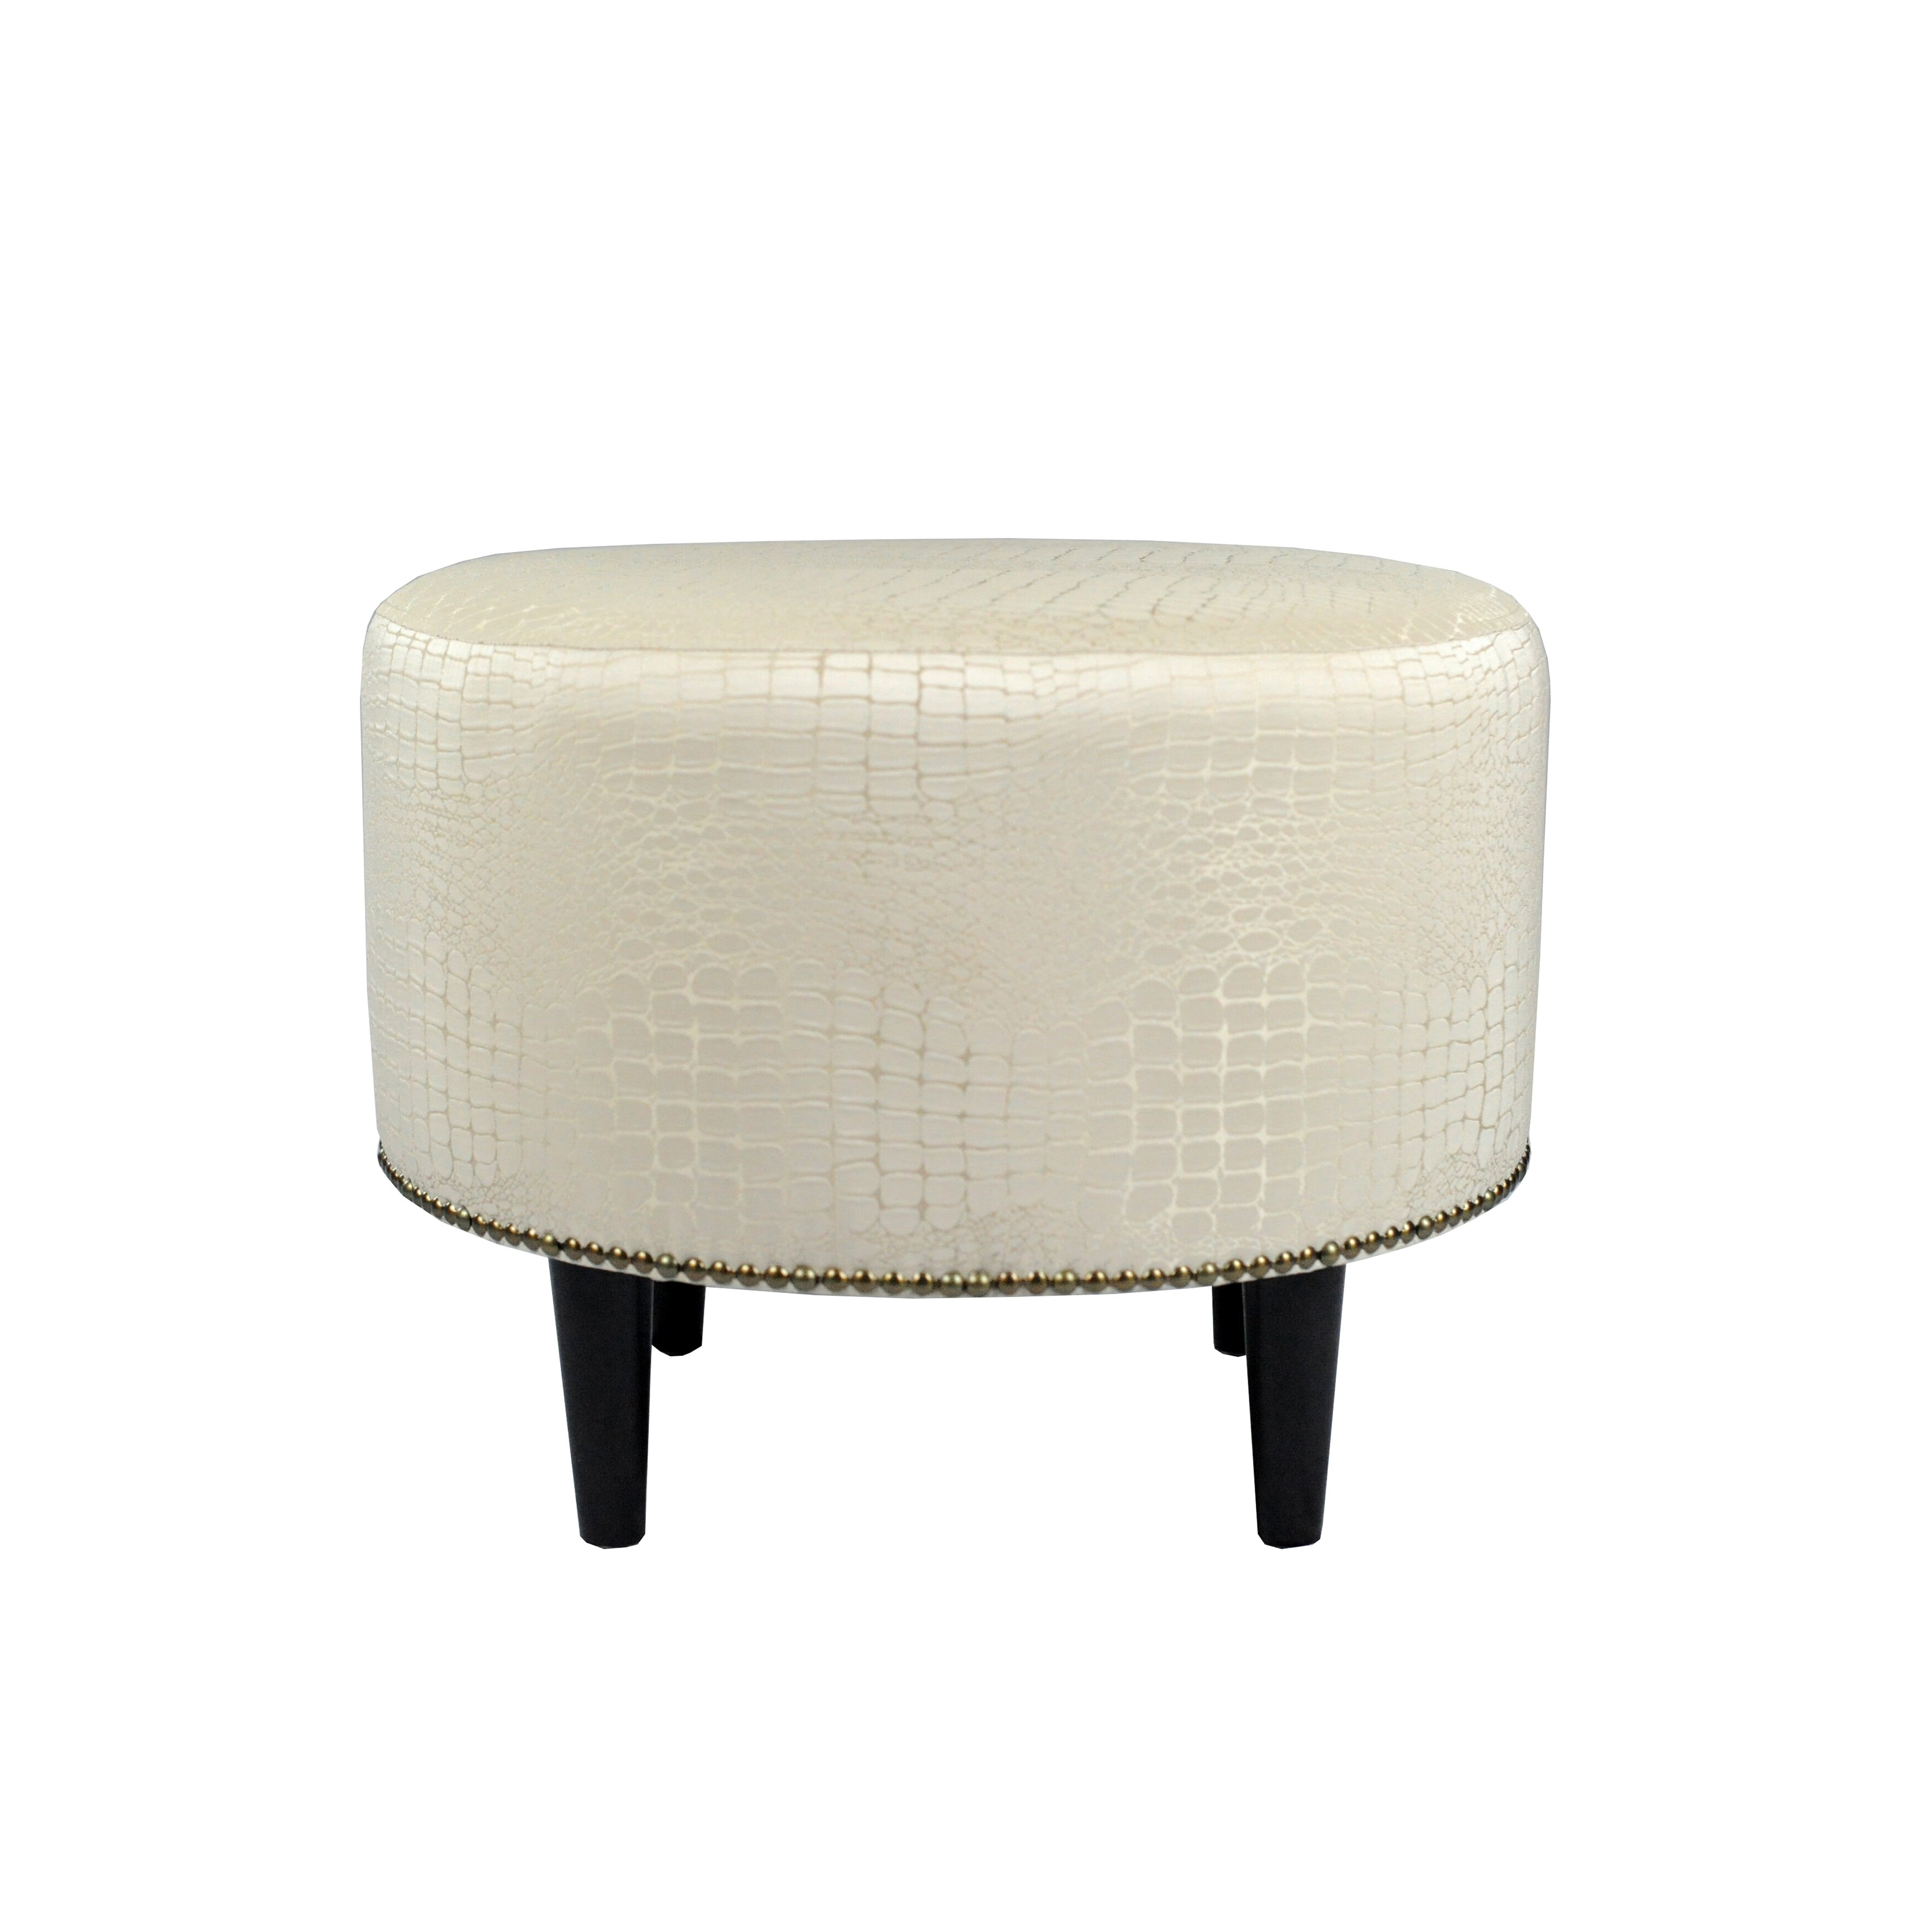 mjlfurniture tillie upholstered ottoman reviews wayfair ca